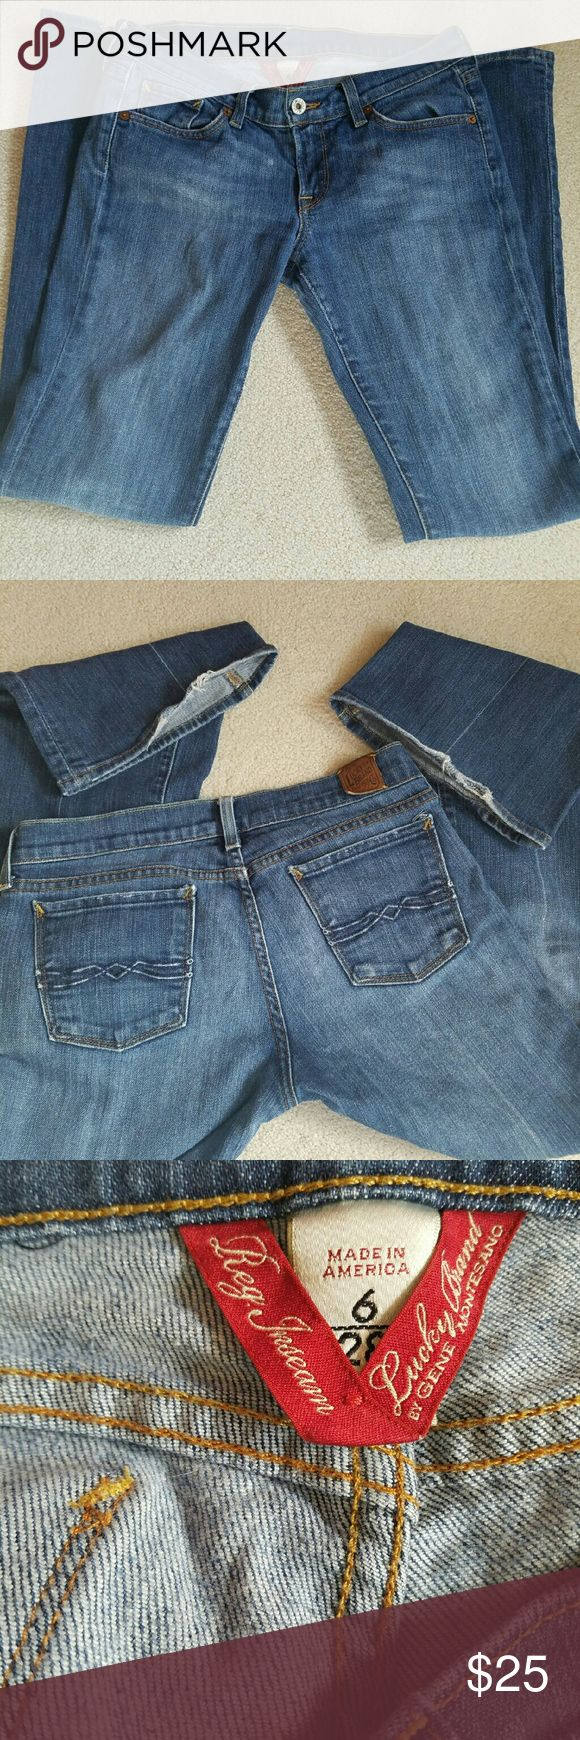 Lucky Jeans These are preloved. Great condition  The bottom of the jeans is a little worn, as seen in second pic.   Great pair of dark jeans! Lucky Brand Jeans